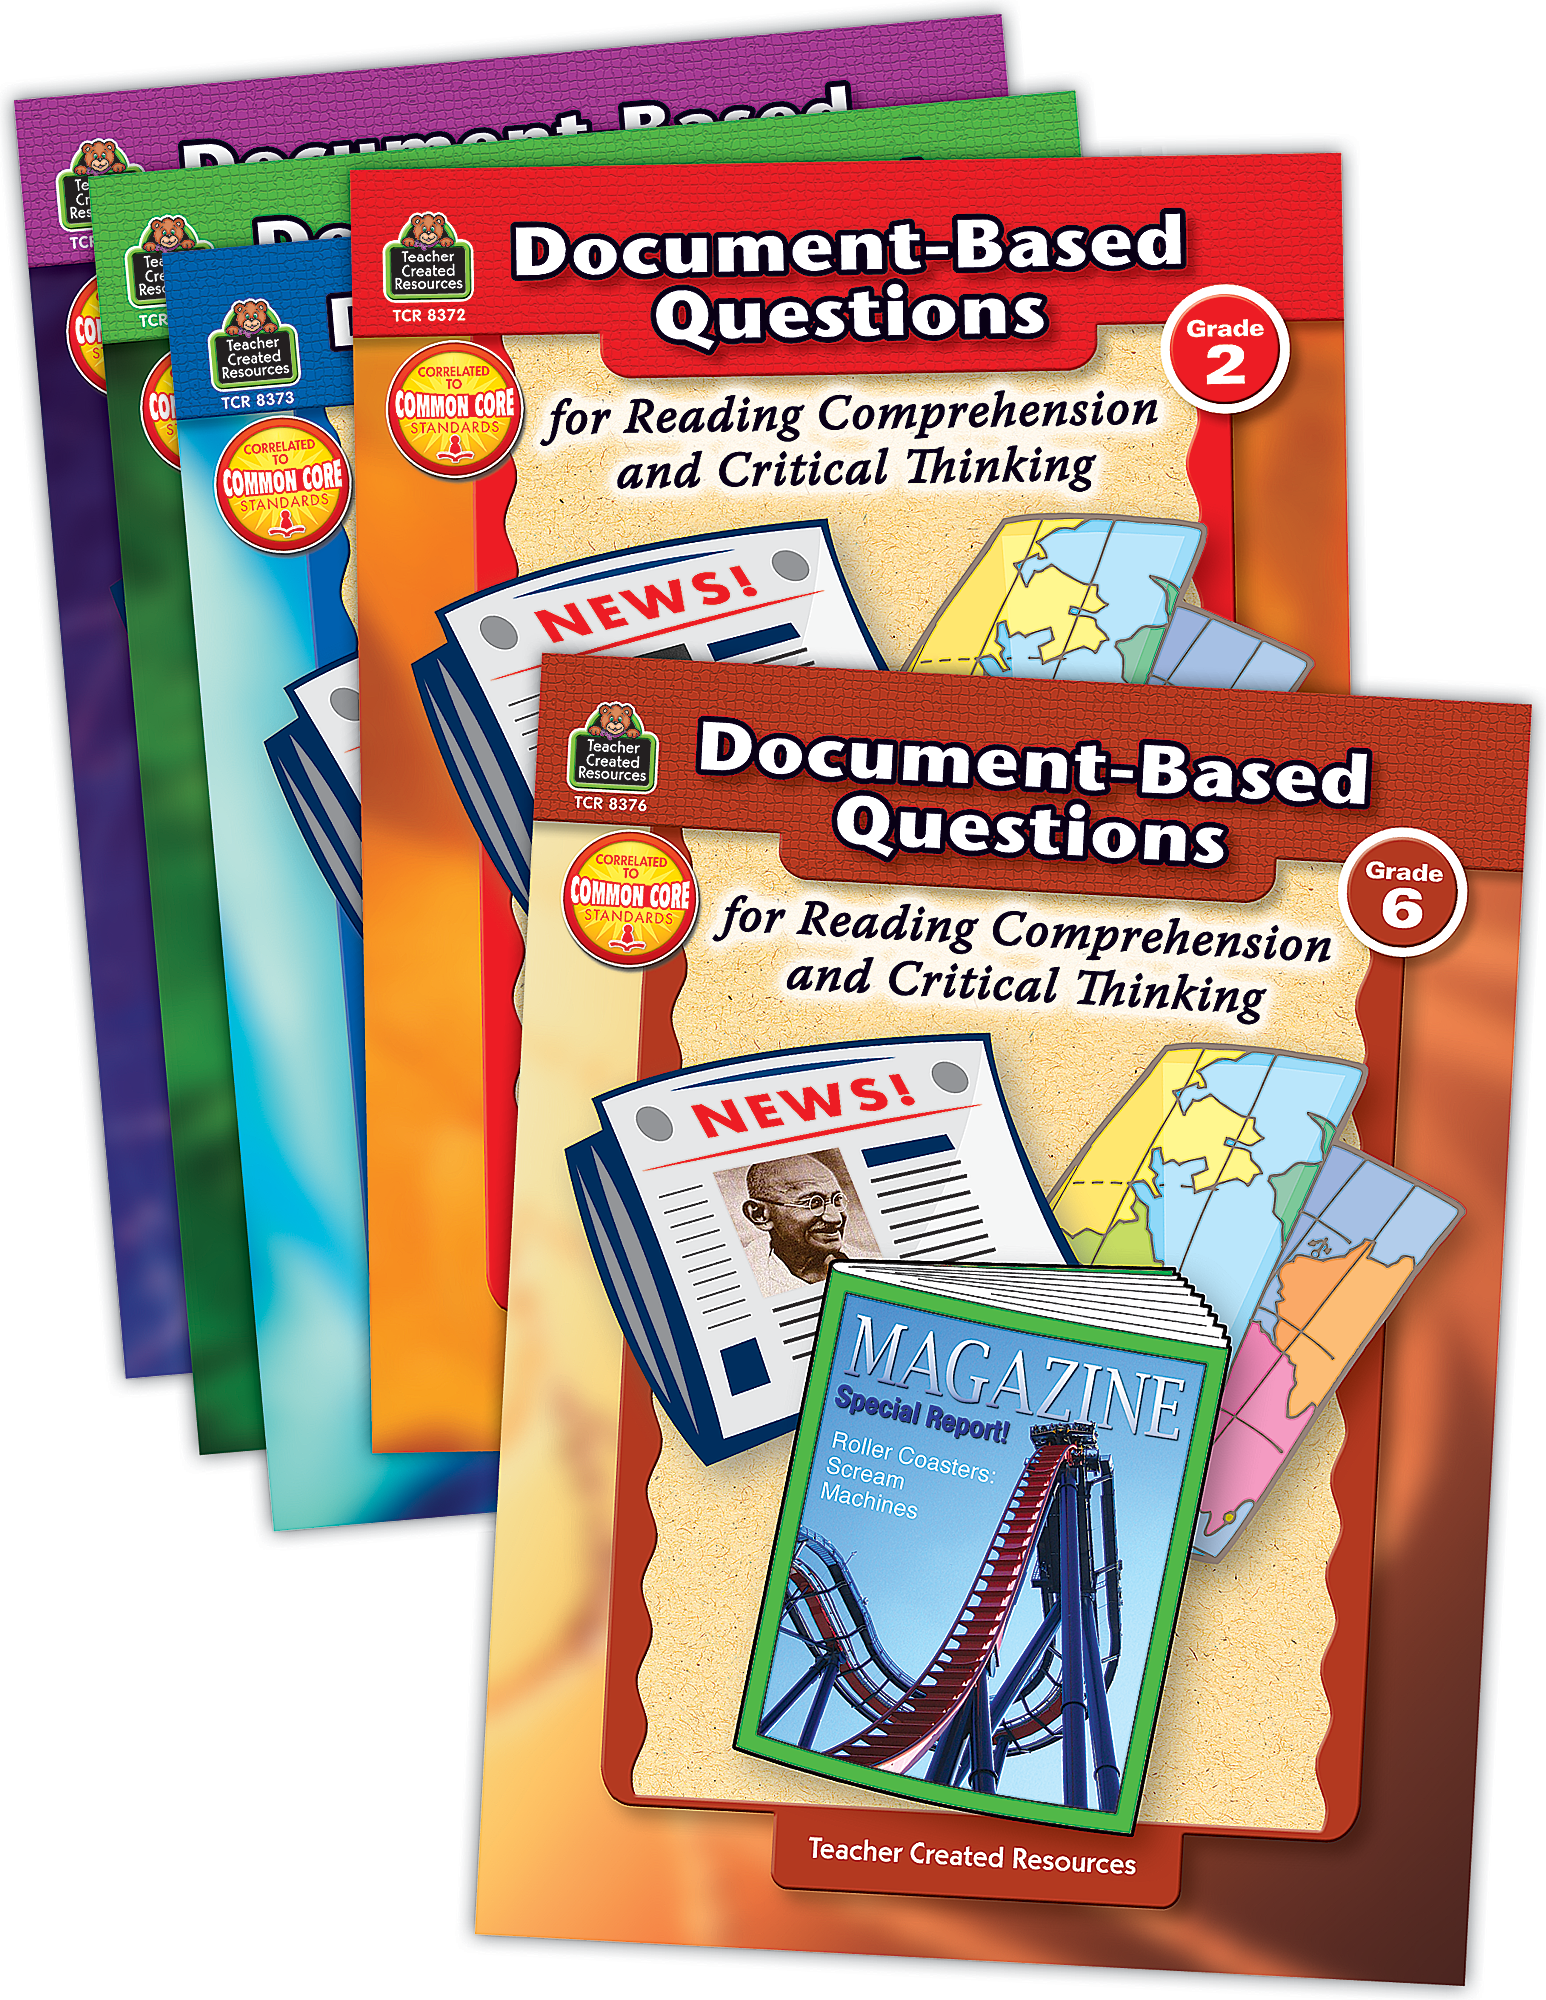 Document-based questions for reading comprehension and critical thinking grade 4